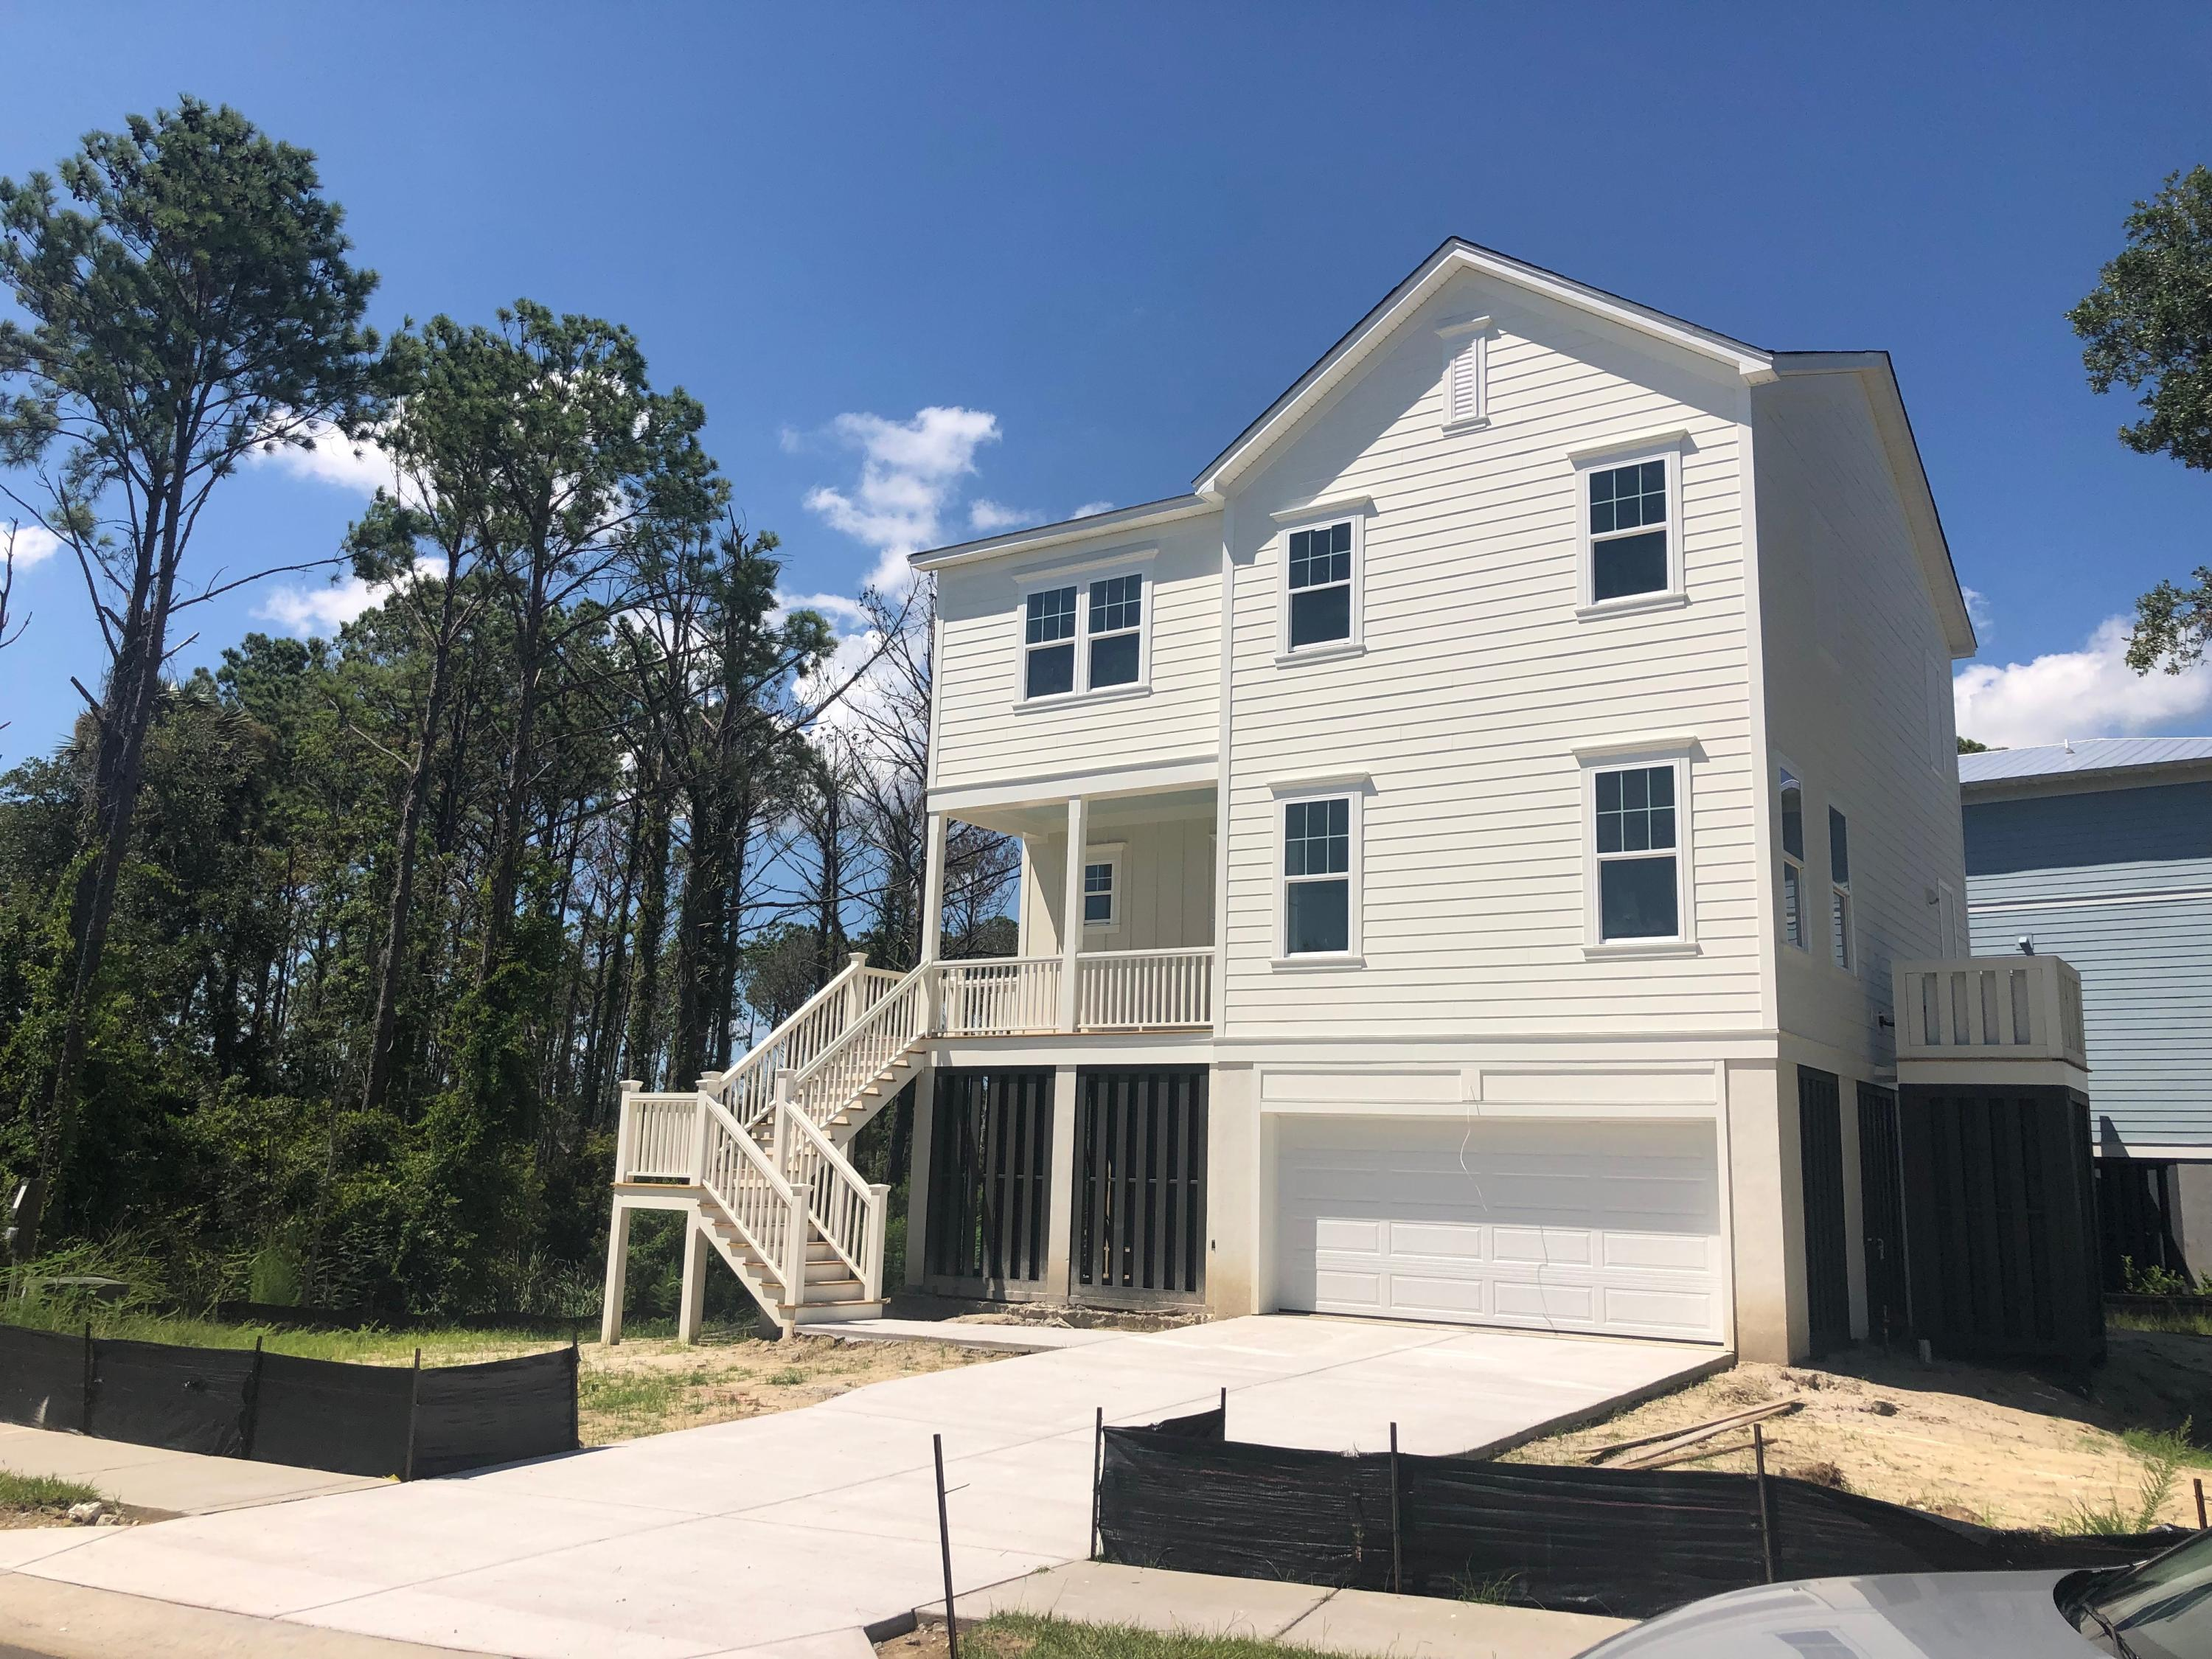 Stratton by the Sound Homes For Sale - 1419 Stratton Place, Mount Pleasant, SC - 4